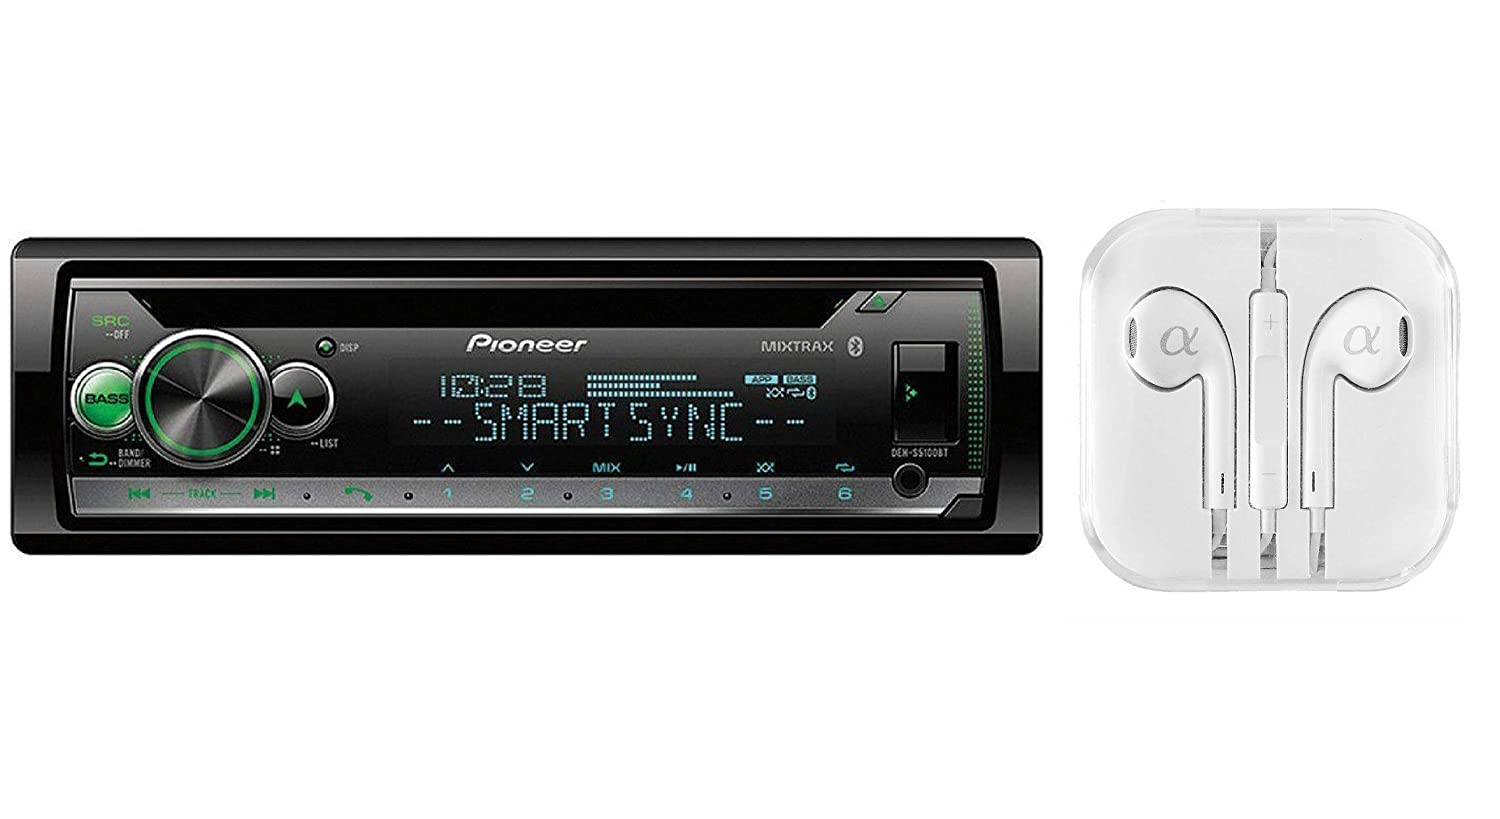 Pioneer Deh S5000bt Cd Receiver With Improved Arc App Scosche Wiring Harness Problems Compatibility Mixtrax Built In Bluetooth And Color Customization Cell Phones